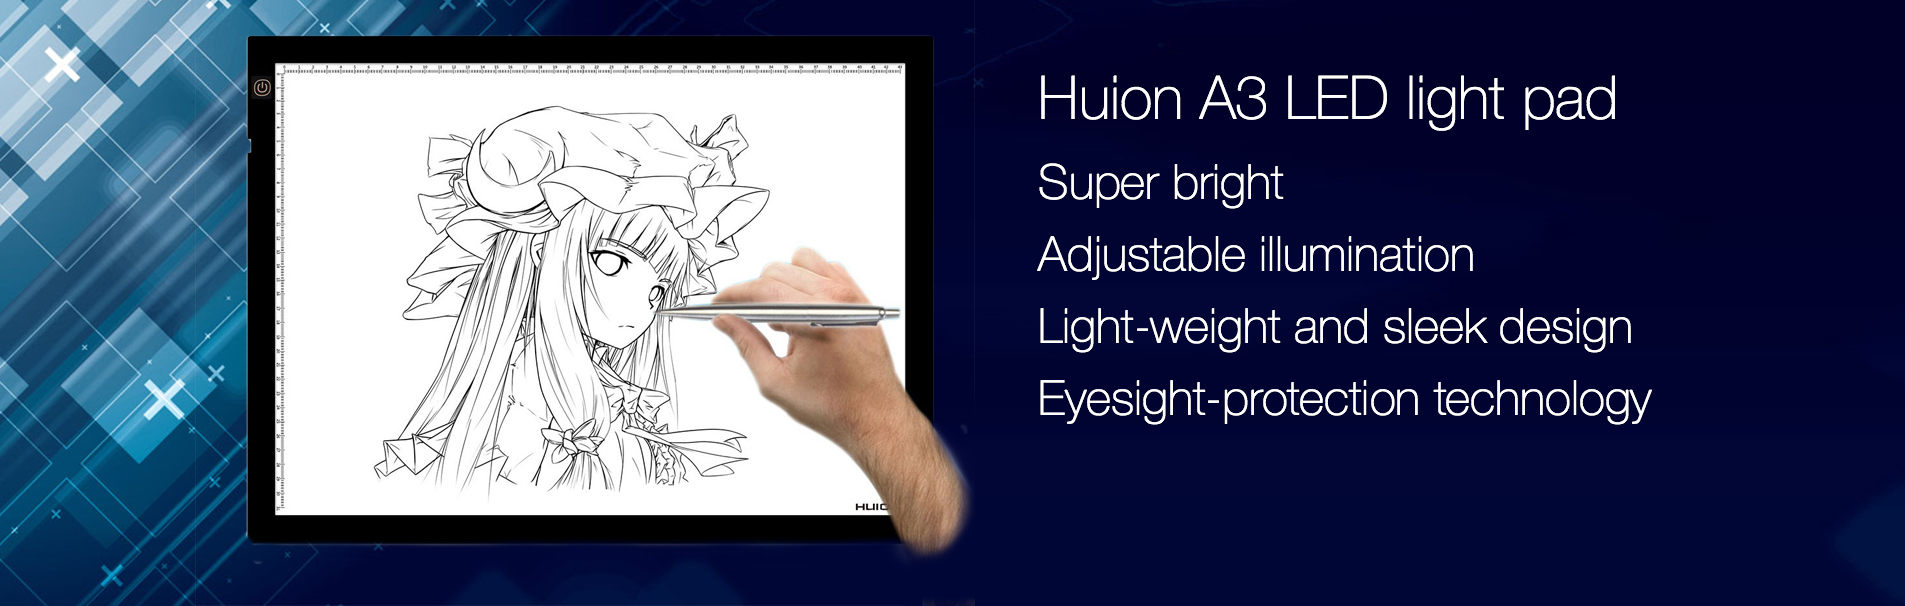 a3-led-light-pad